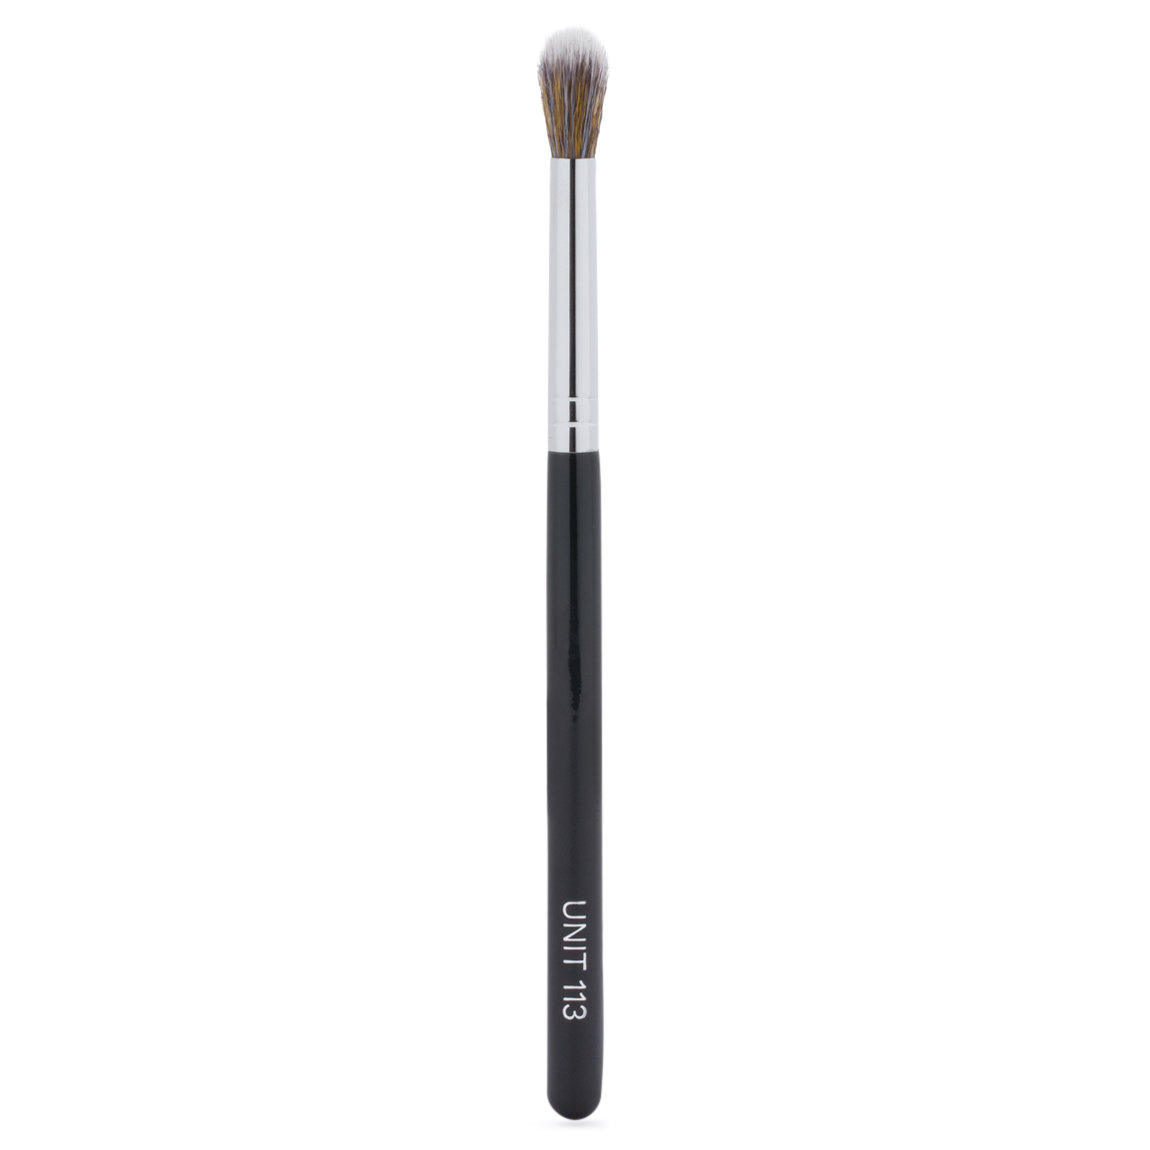 UNIT 113 Eye Brush